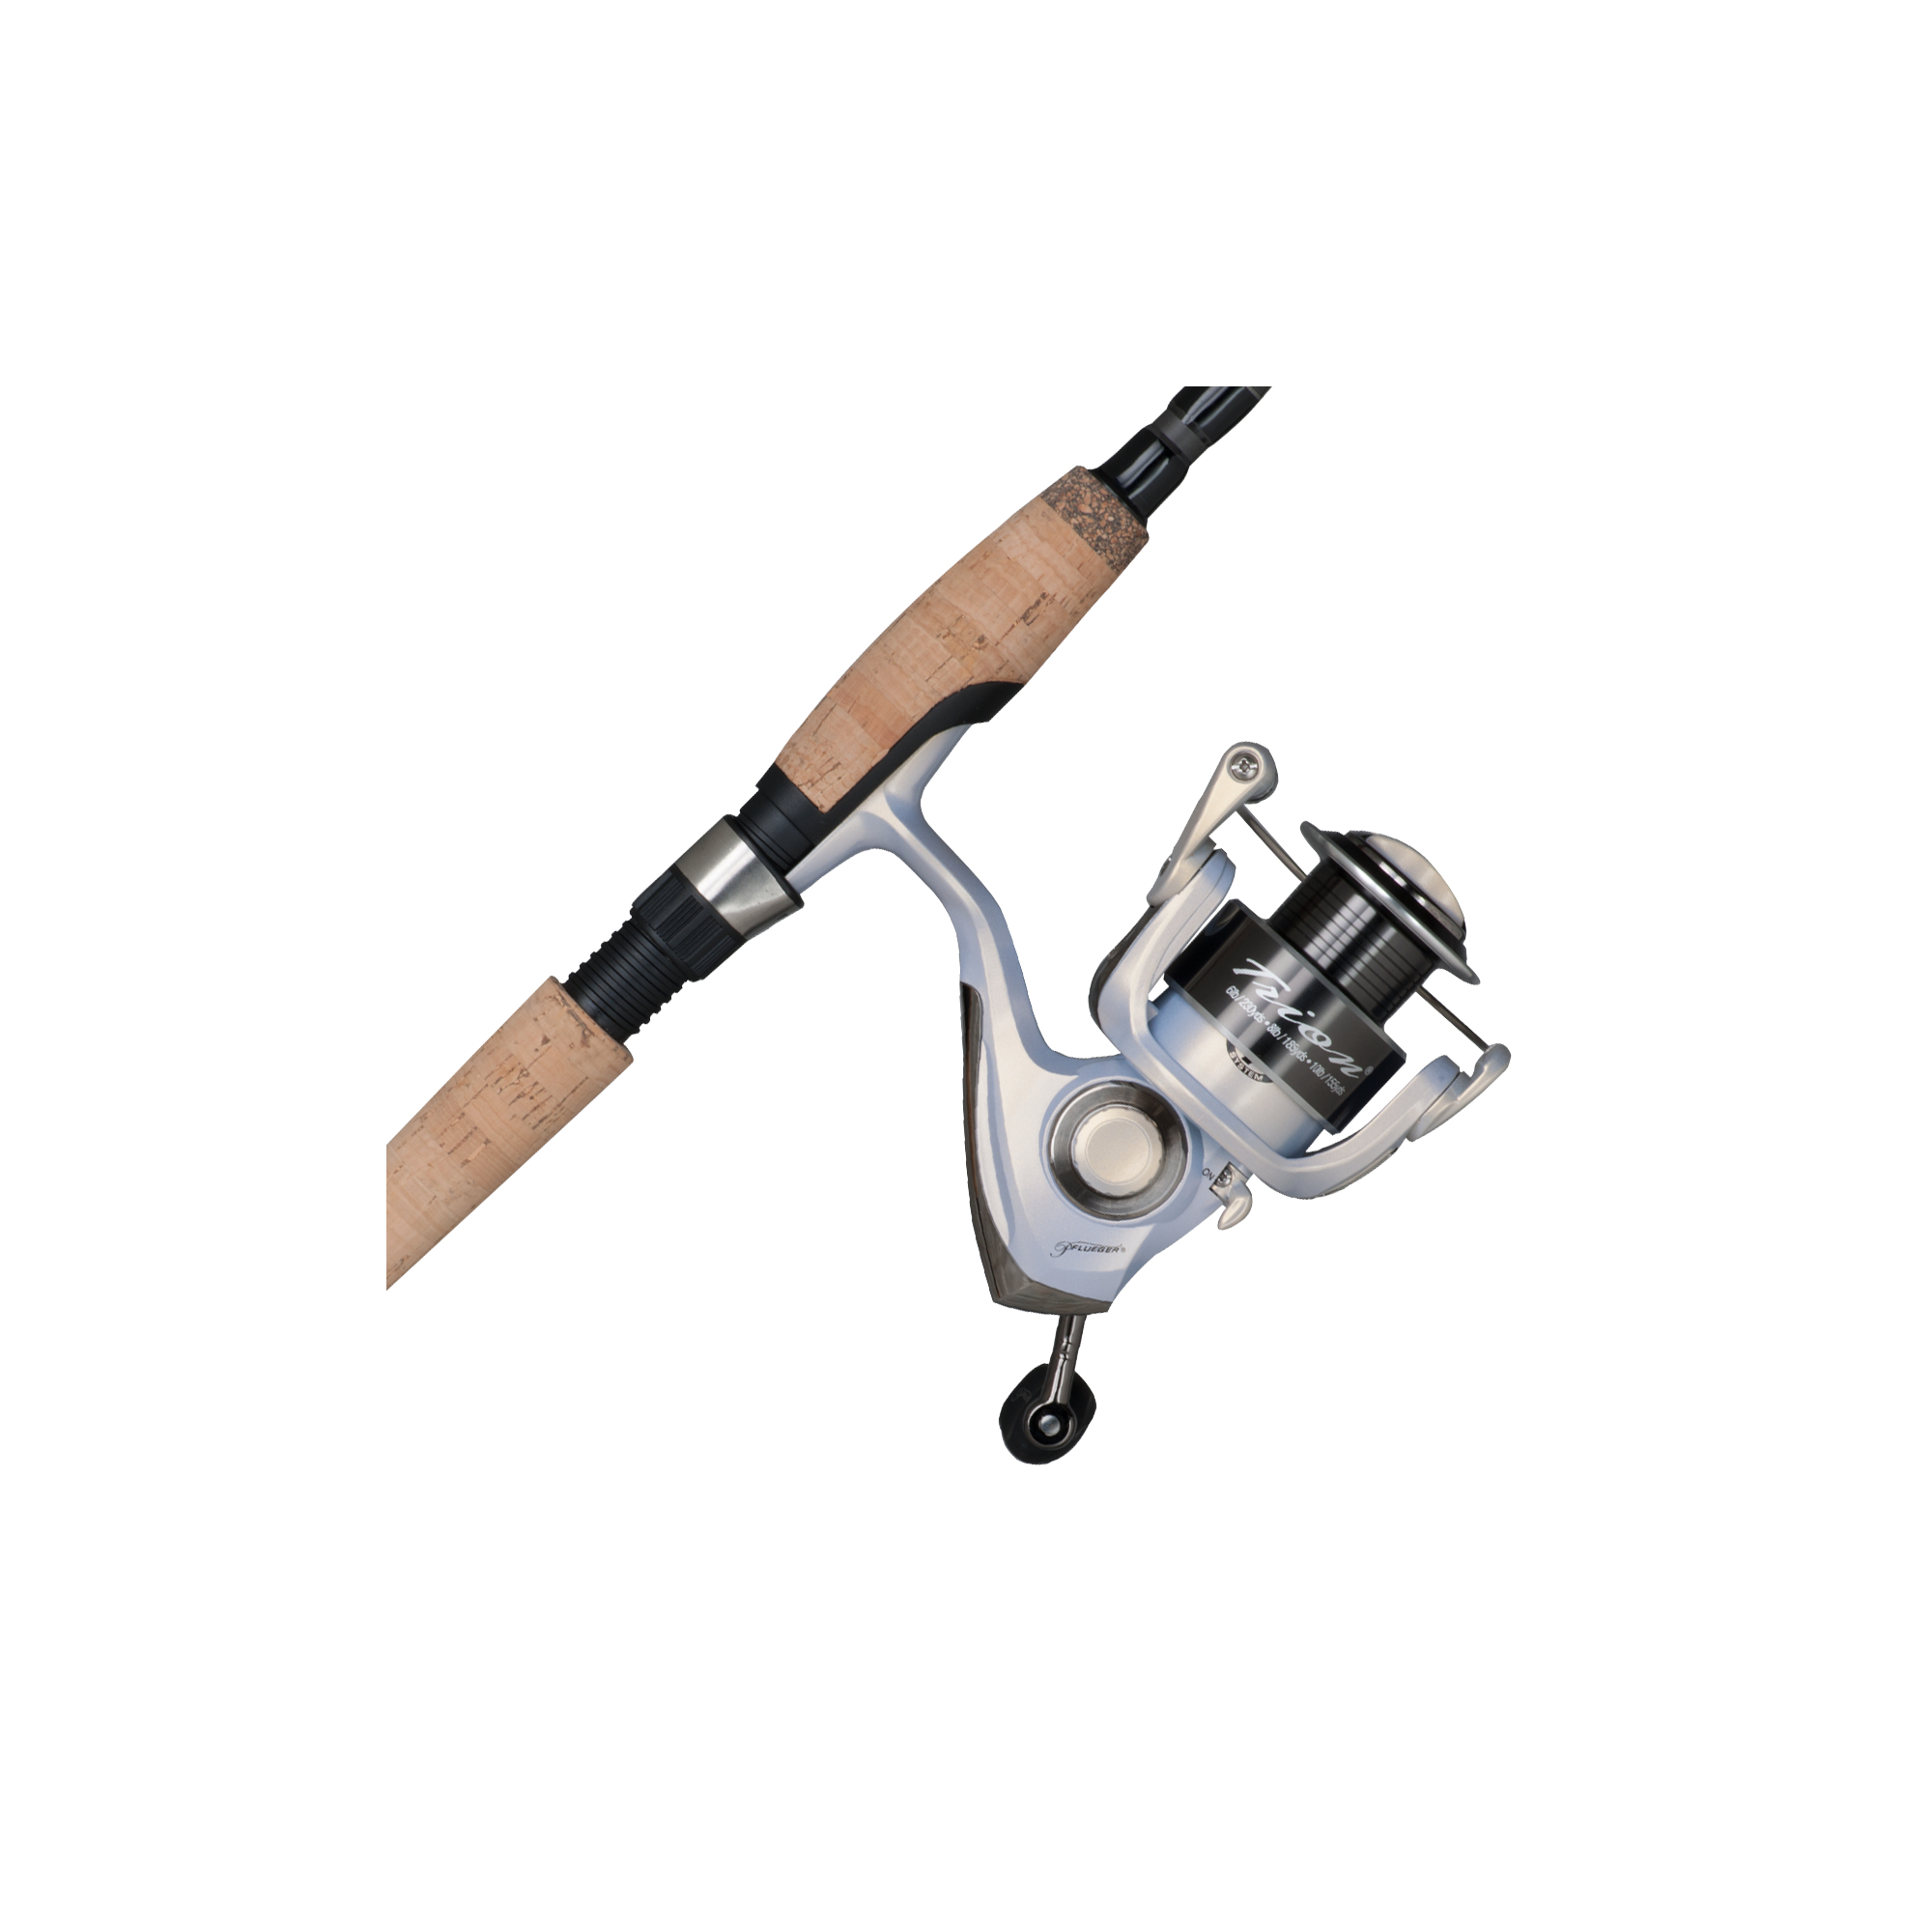 Pflueger Trion Spinning Reel and Fishing Rod Combo by Pflueger